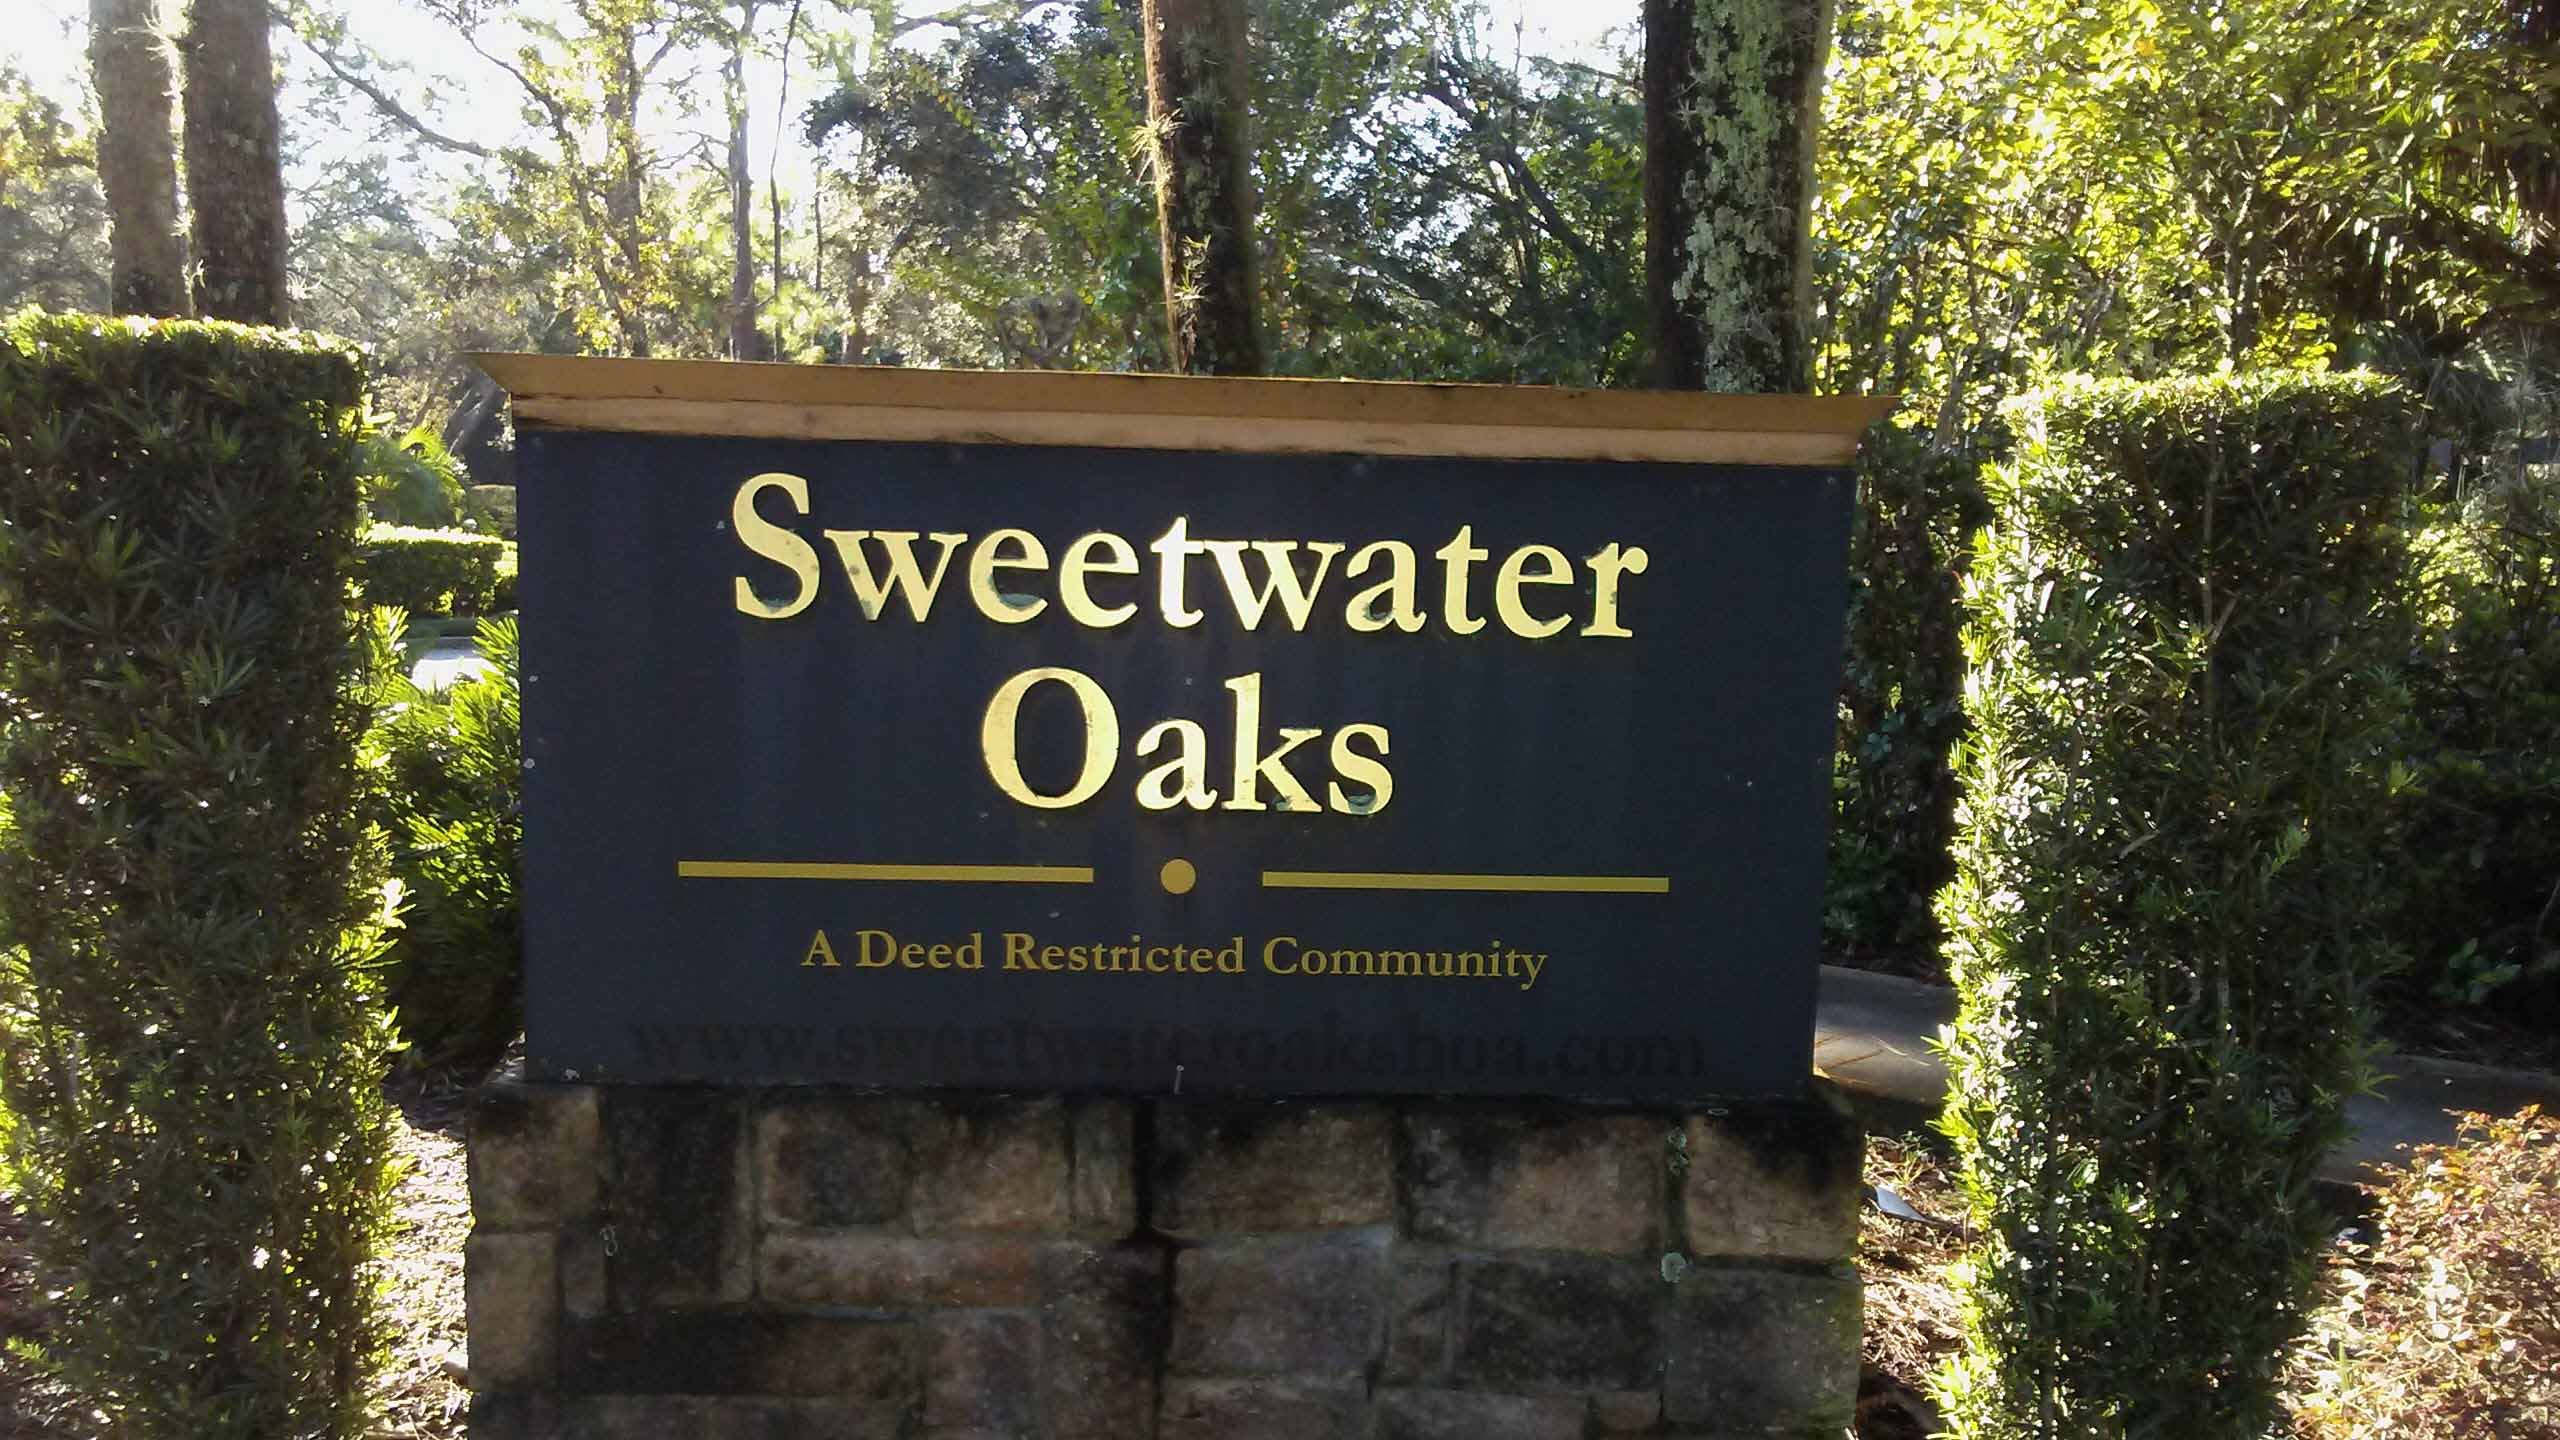 Sweetwater Oaks, Longwood, Florida 32779